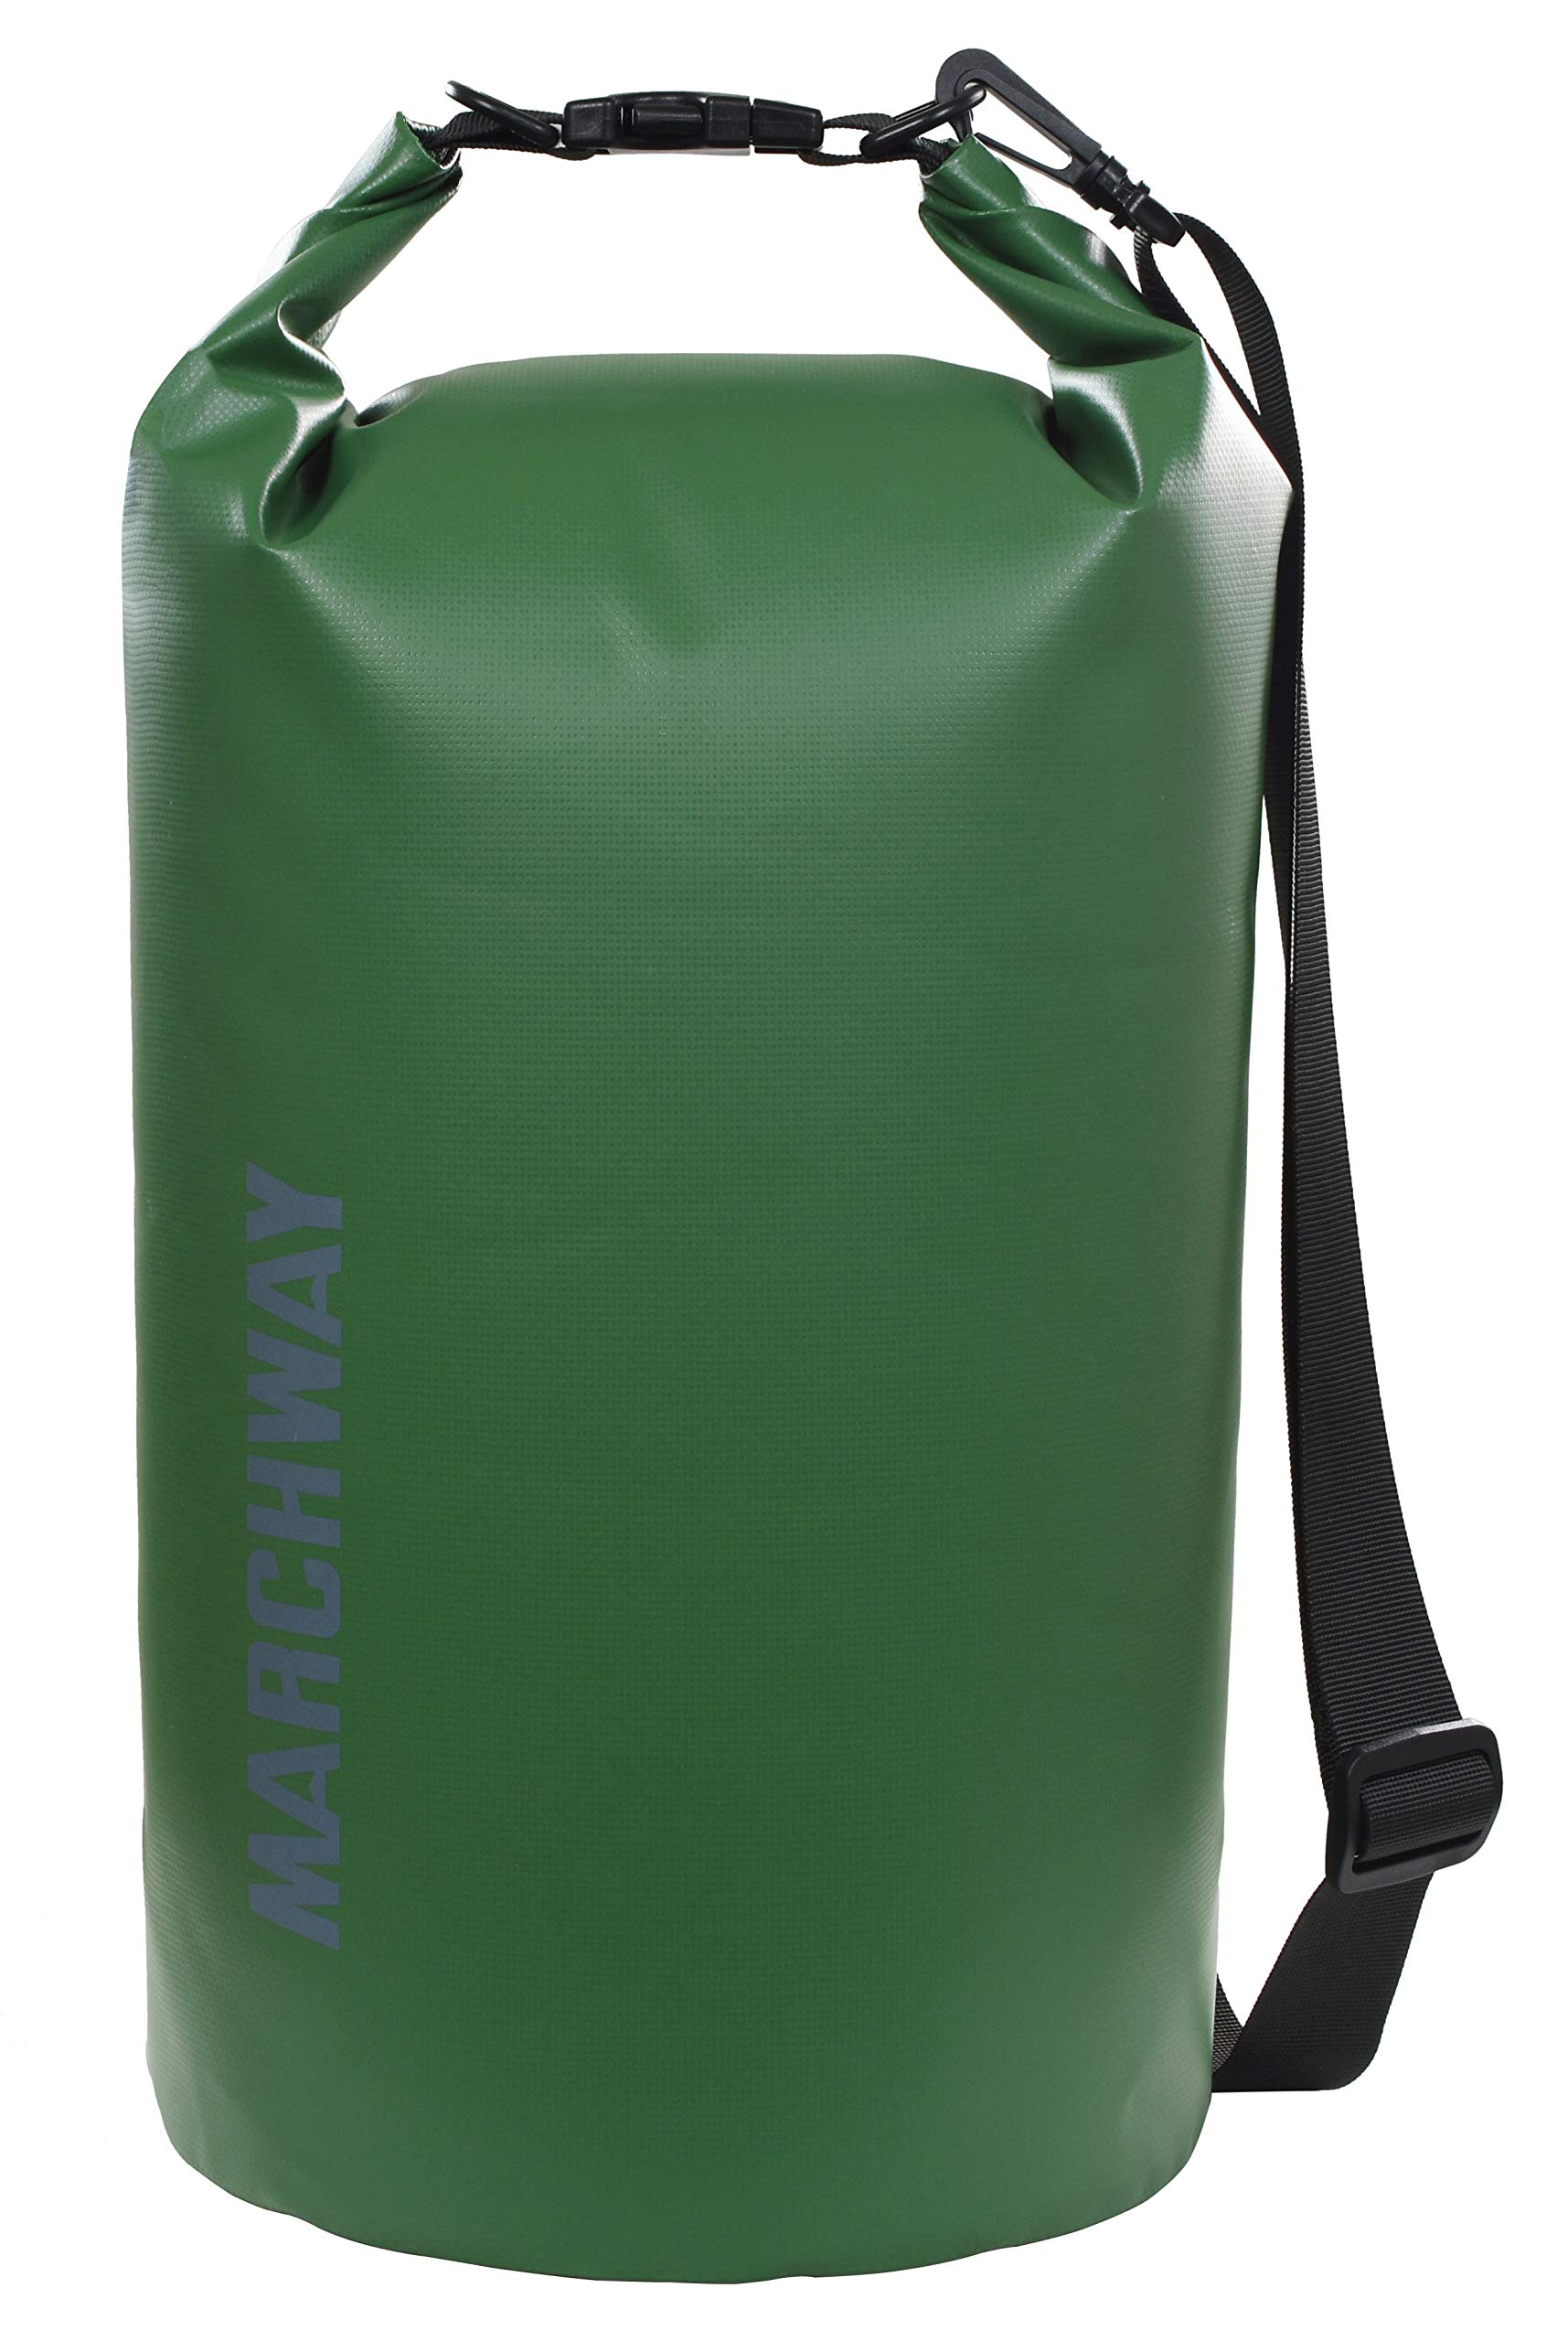 MARCHWAY Floating Waterproof Dry Bag 5L/10L/20L/30L/40L, Roll Top Sack Keeps Gear Dry for Kayaking, Rafting, Boating, Swimming, Camping, Hiking, Beach, Fishing (Dark Green, 30L) by MARCHWAY